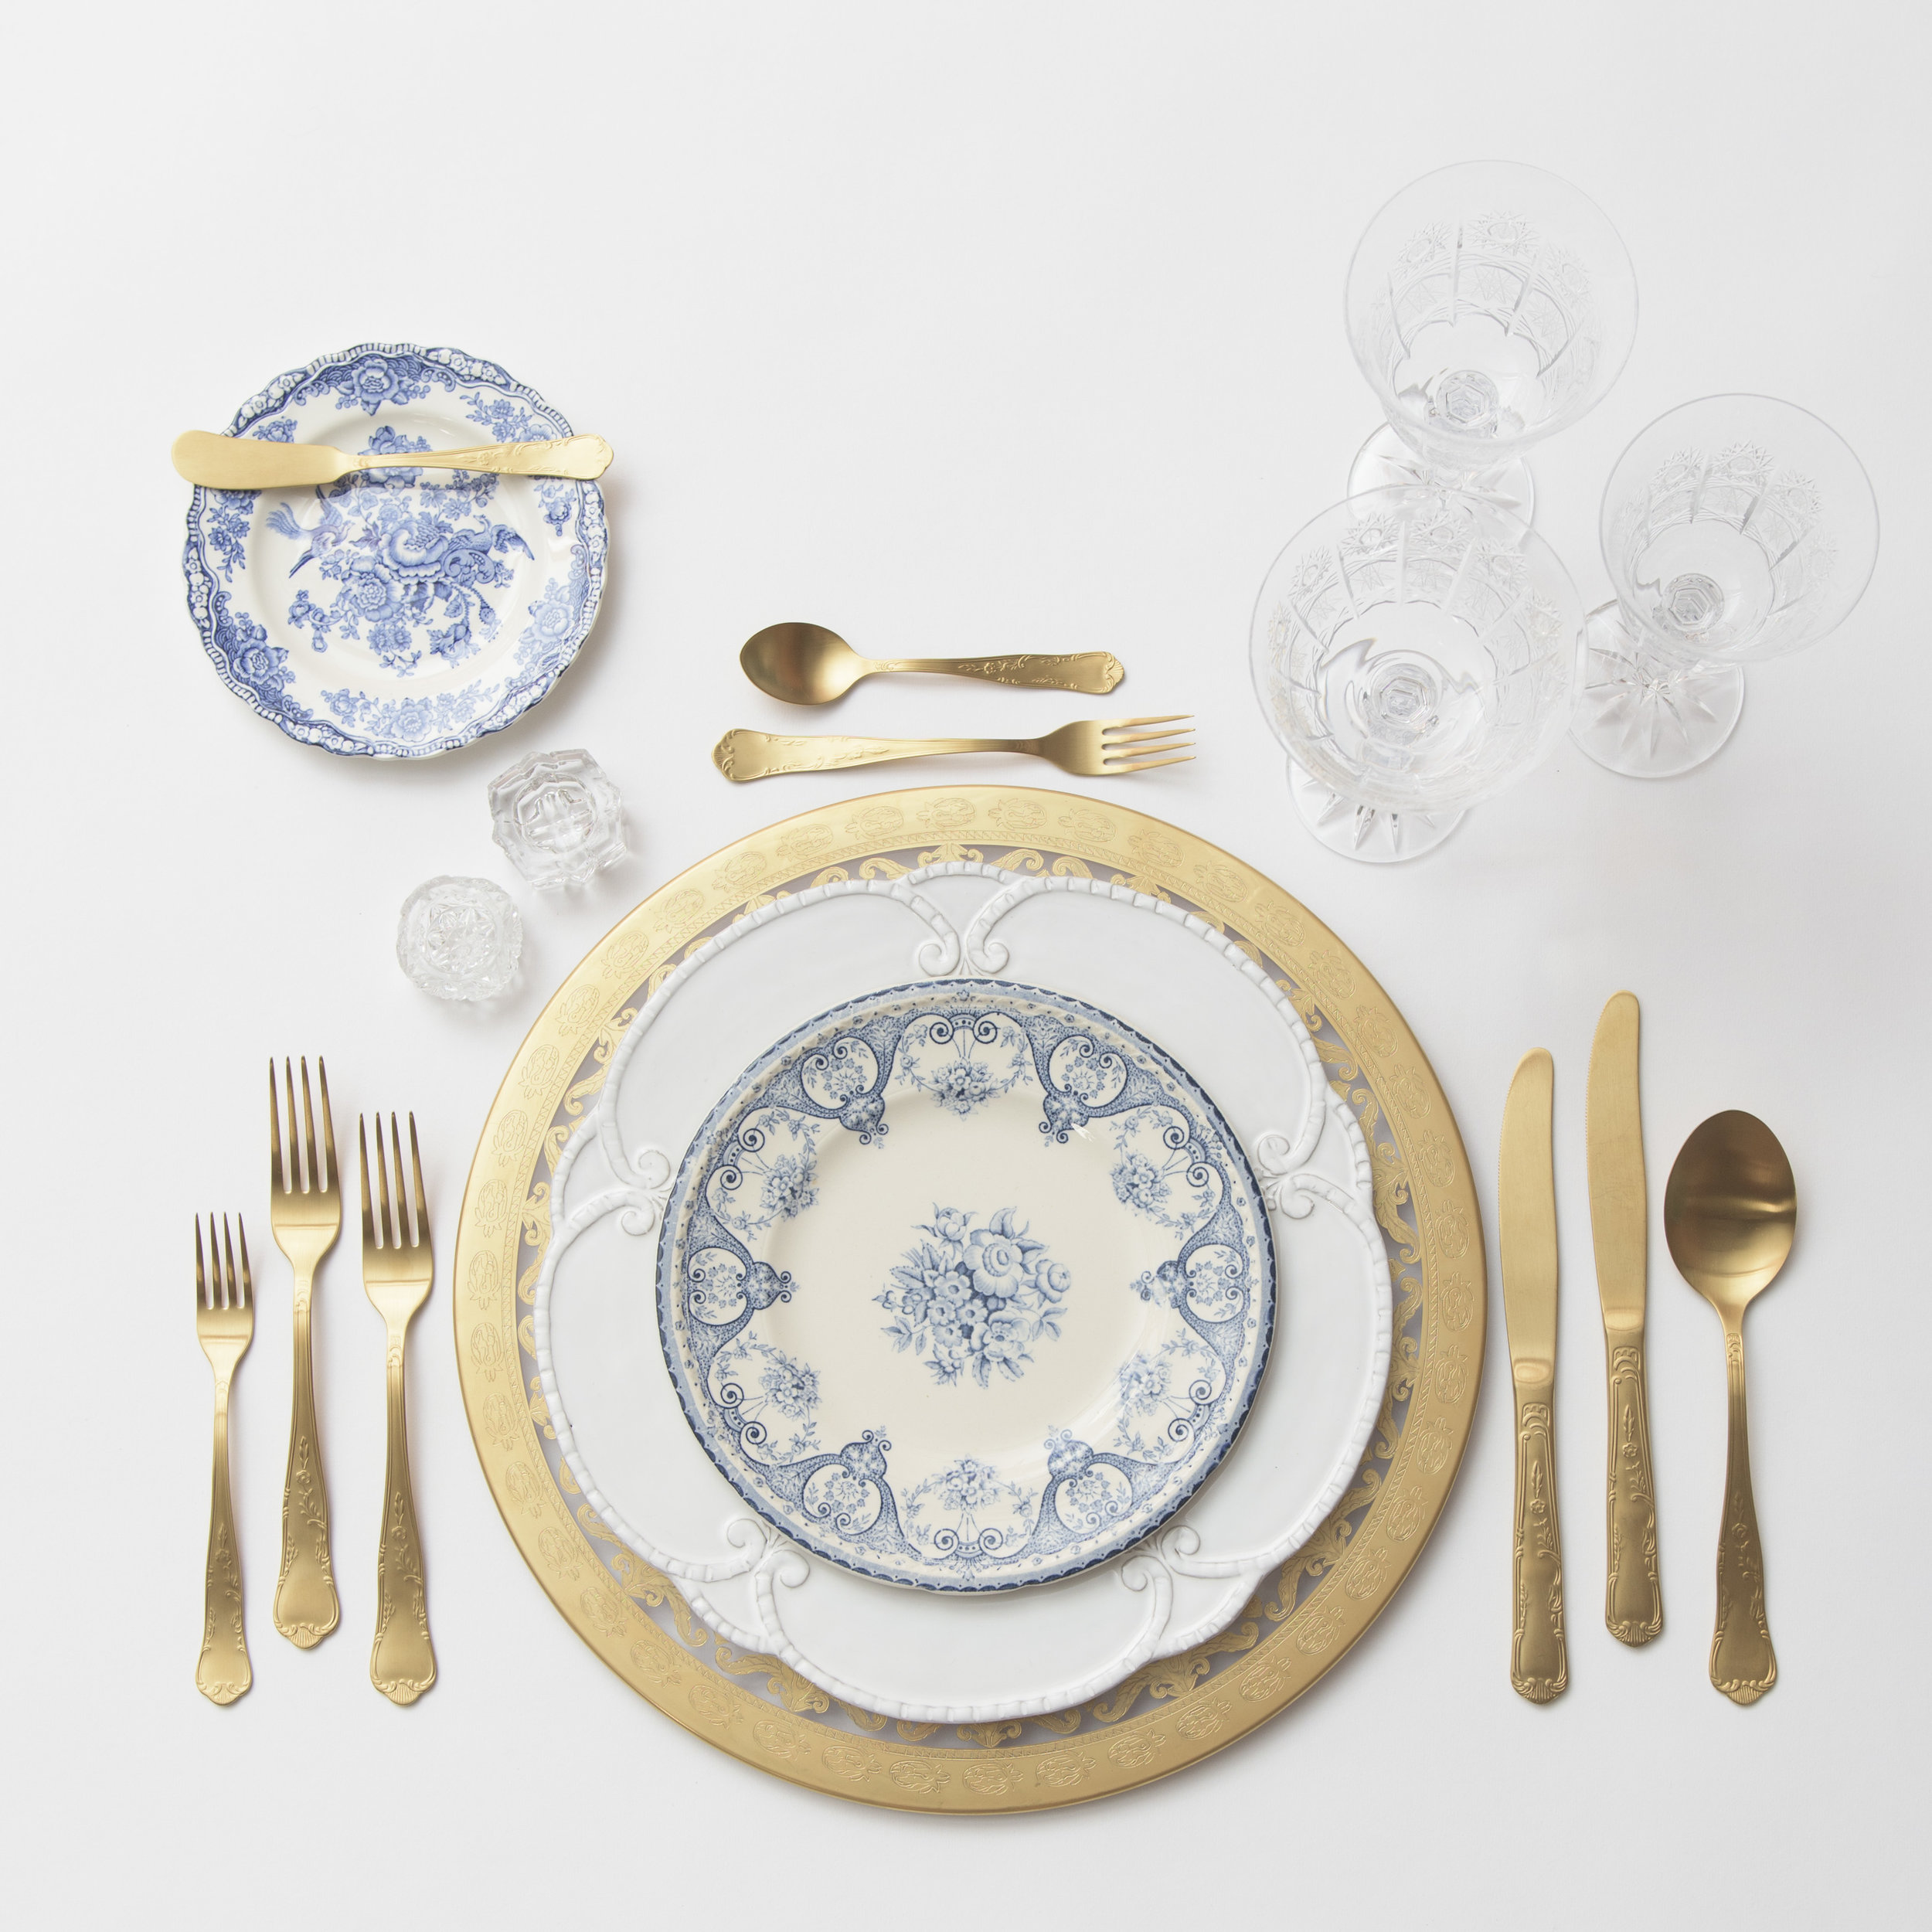 RENT: Versailles Glass Chargers in 24k Gold + Signature Collection Dinnerware + Blue Garden Collection Vintage China + Chateau Flatware in Matte Gold + Czech Crystal Stemware + Antique Crystal Salt Cellars